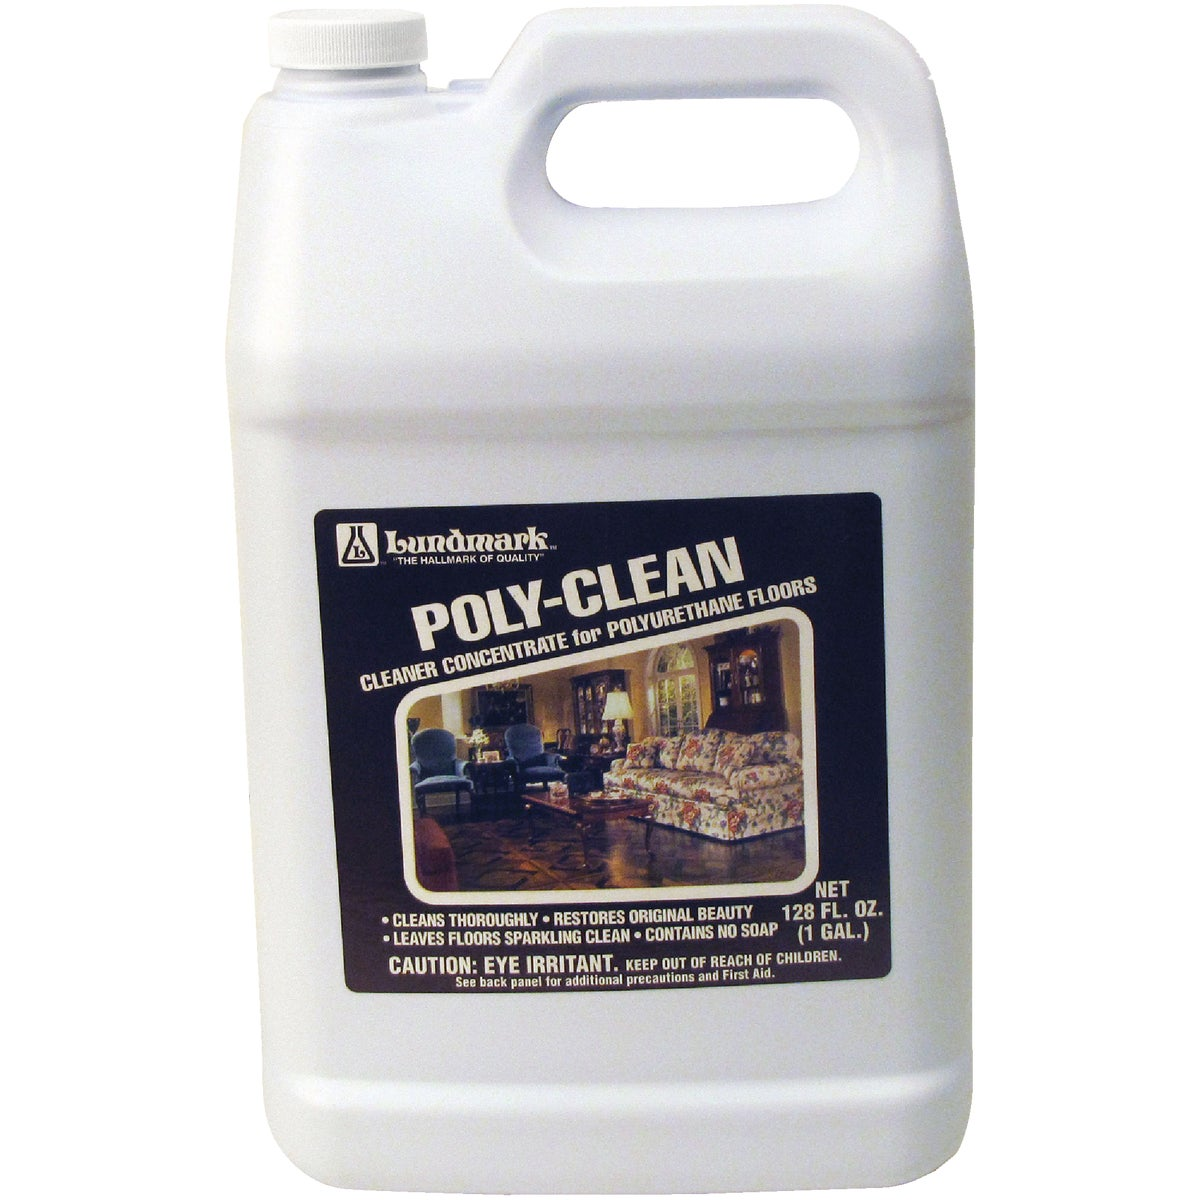 GALLON POLY-CLEAN